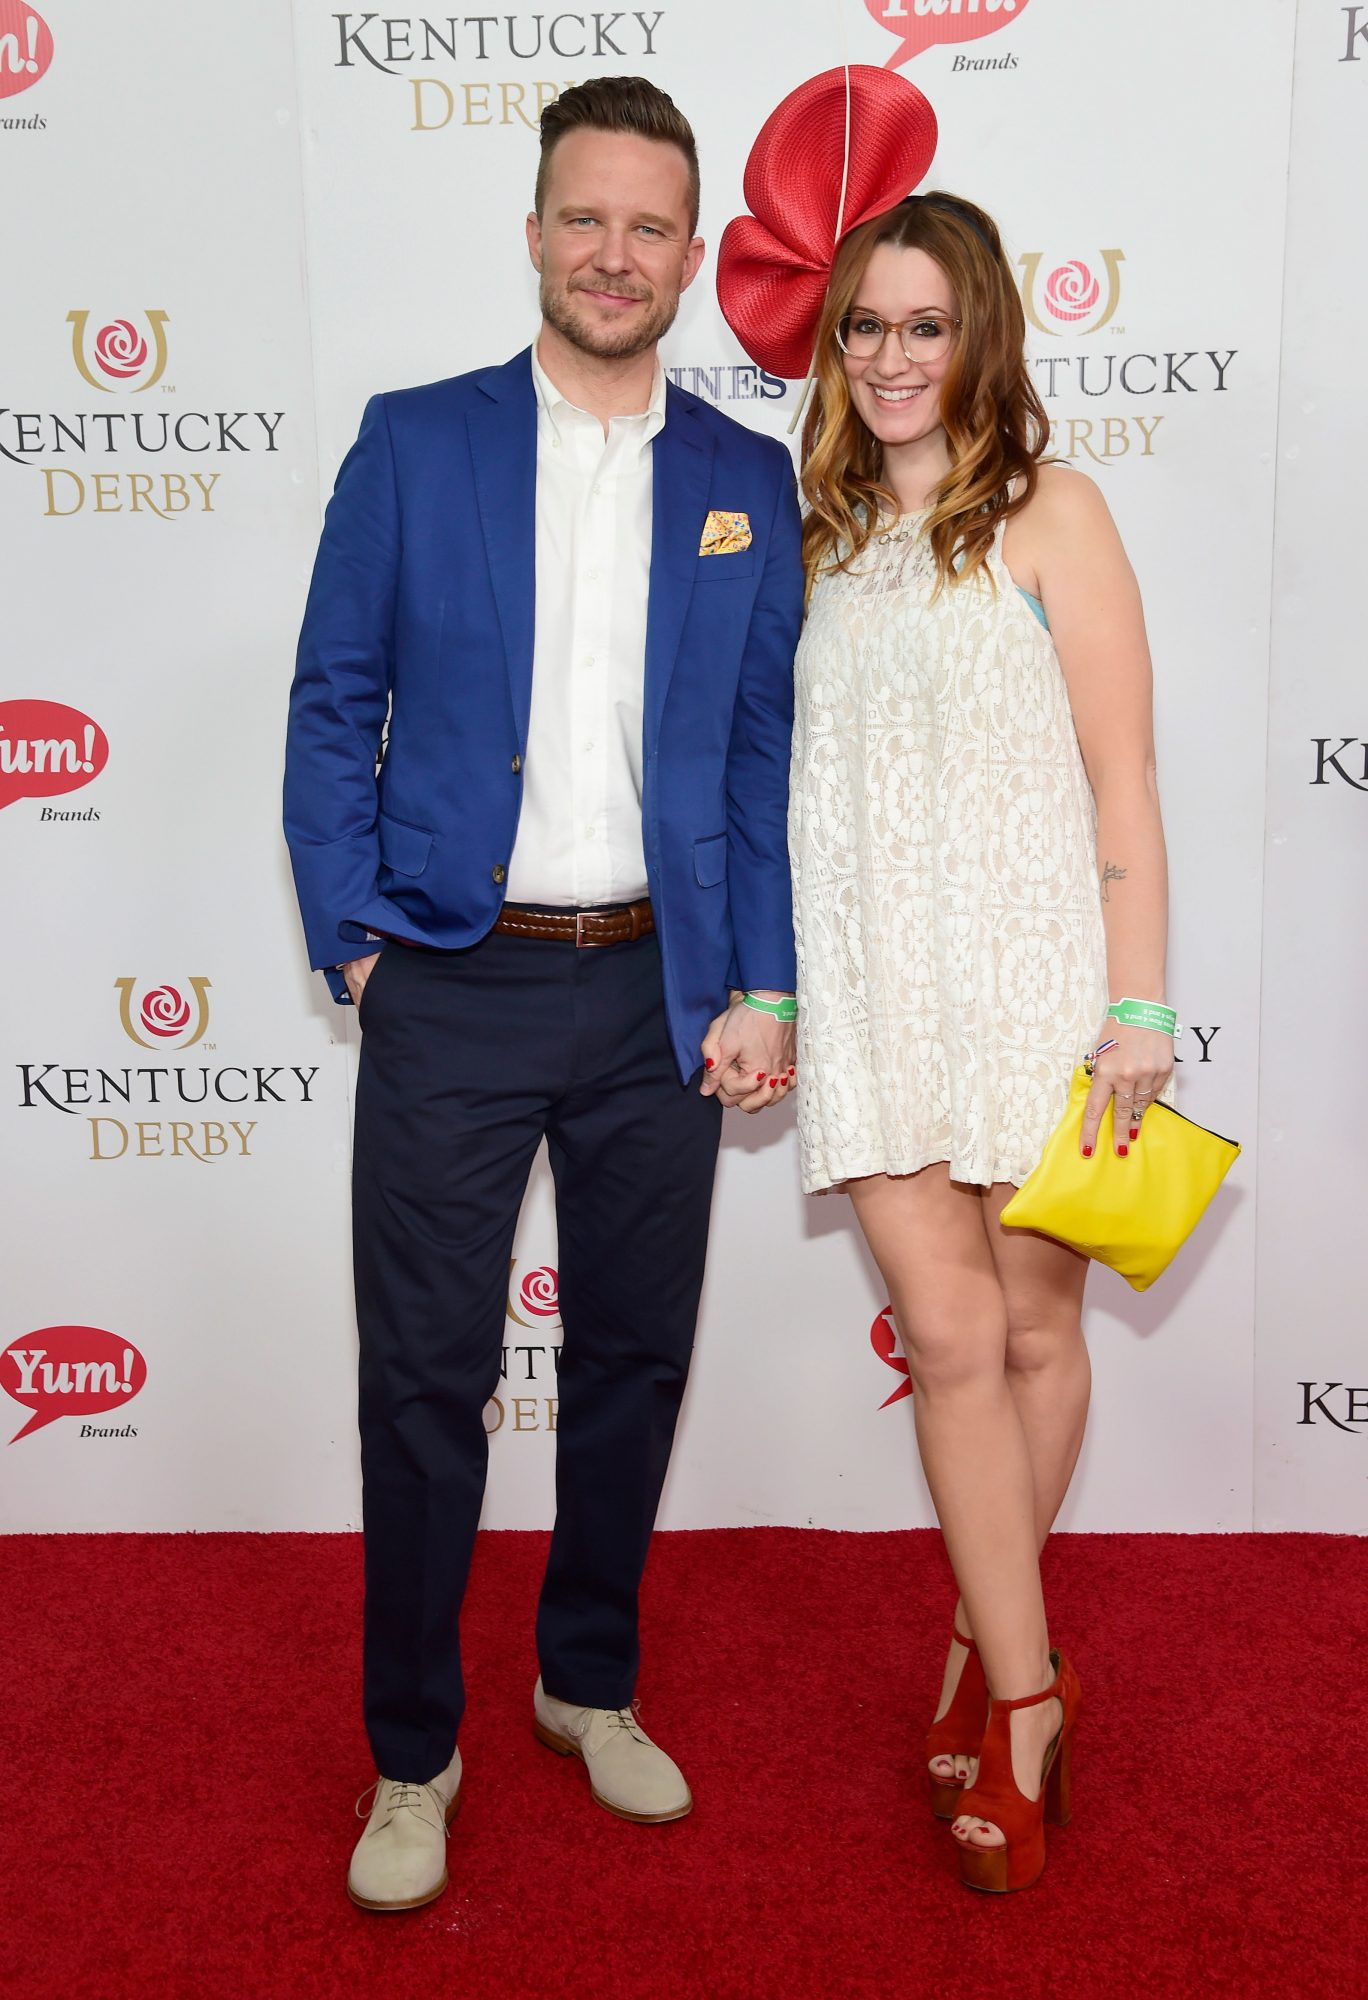 Will Chase at Kentucky Derby